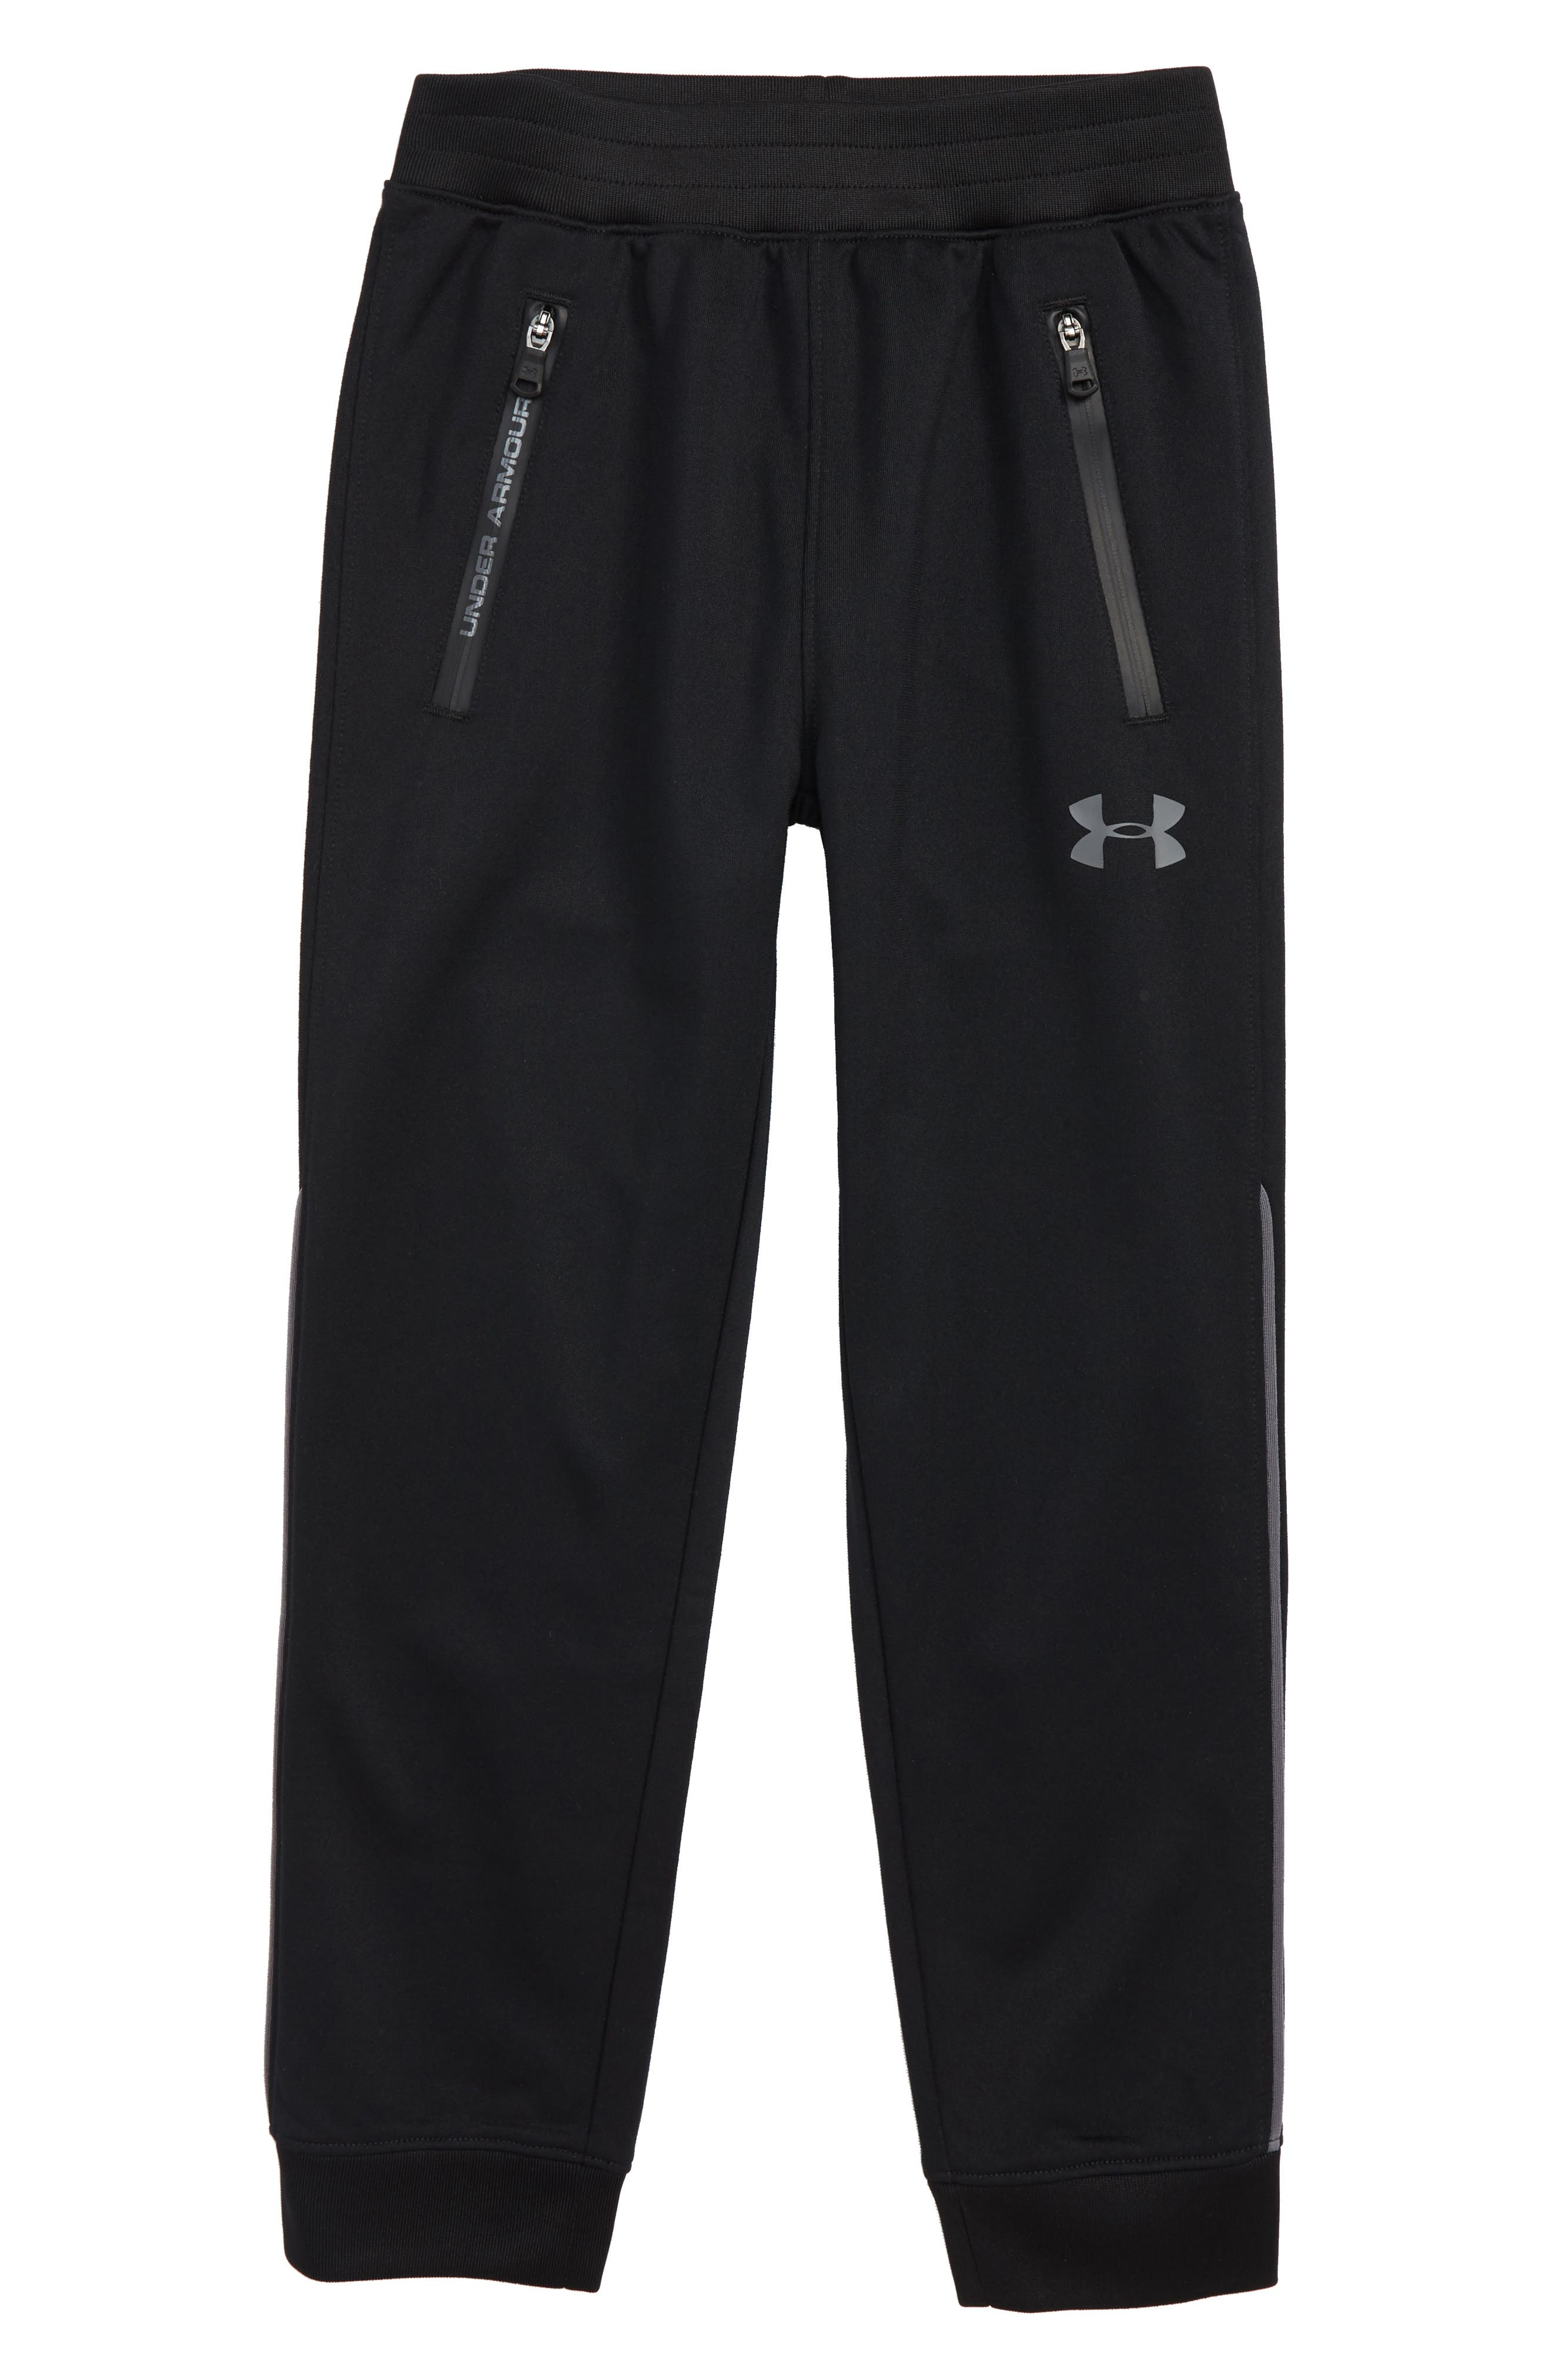 UNDER ARMOUR, Pennant 2.0 Pants, Main thumbnail 1, color, BLACK